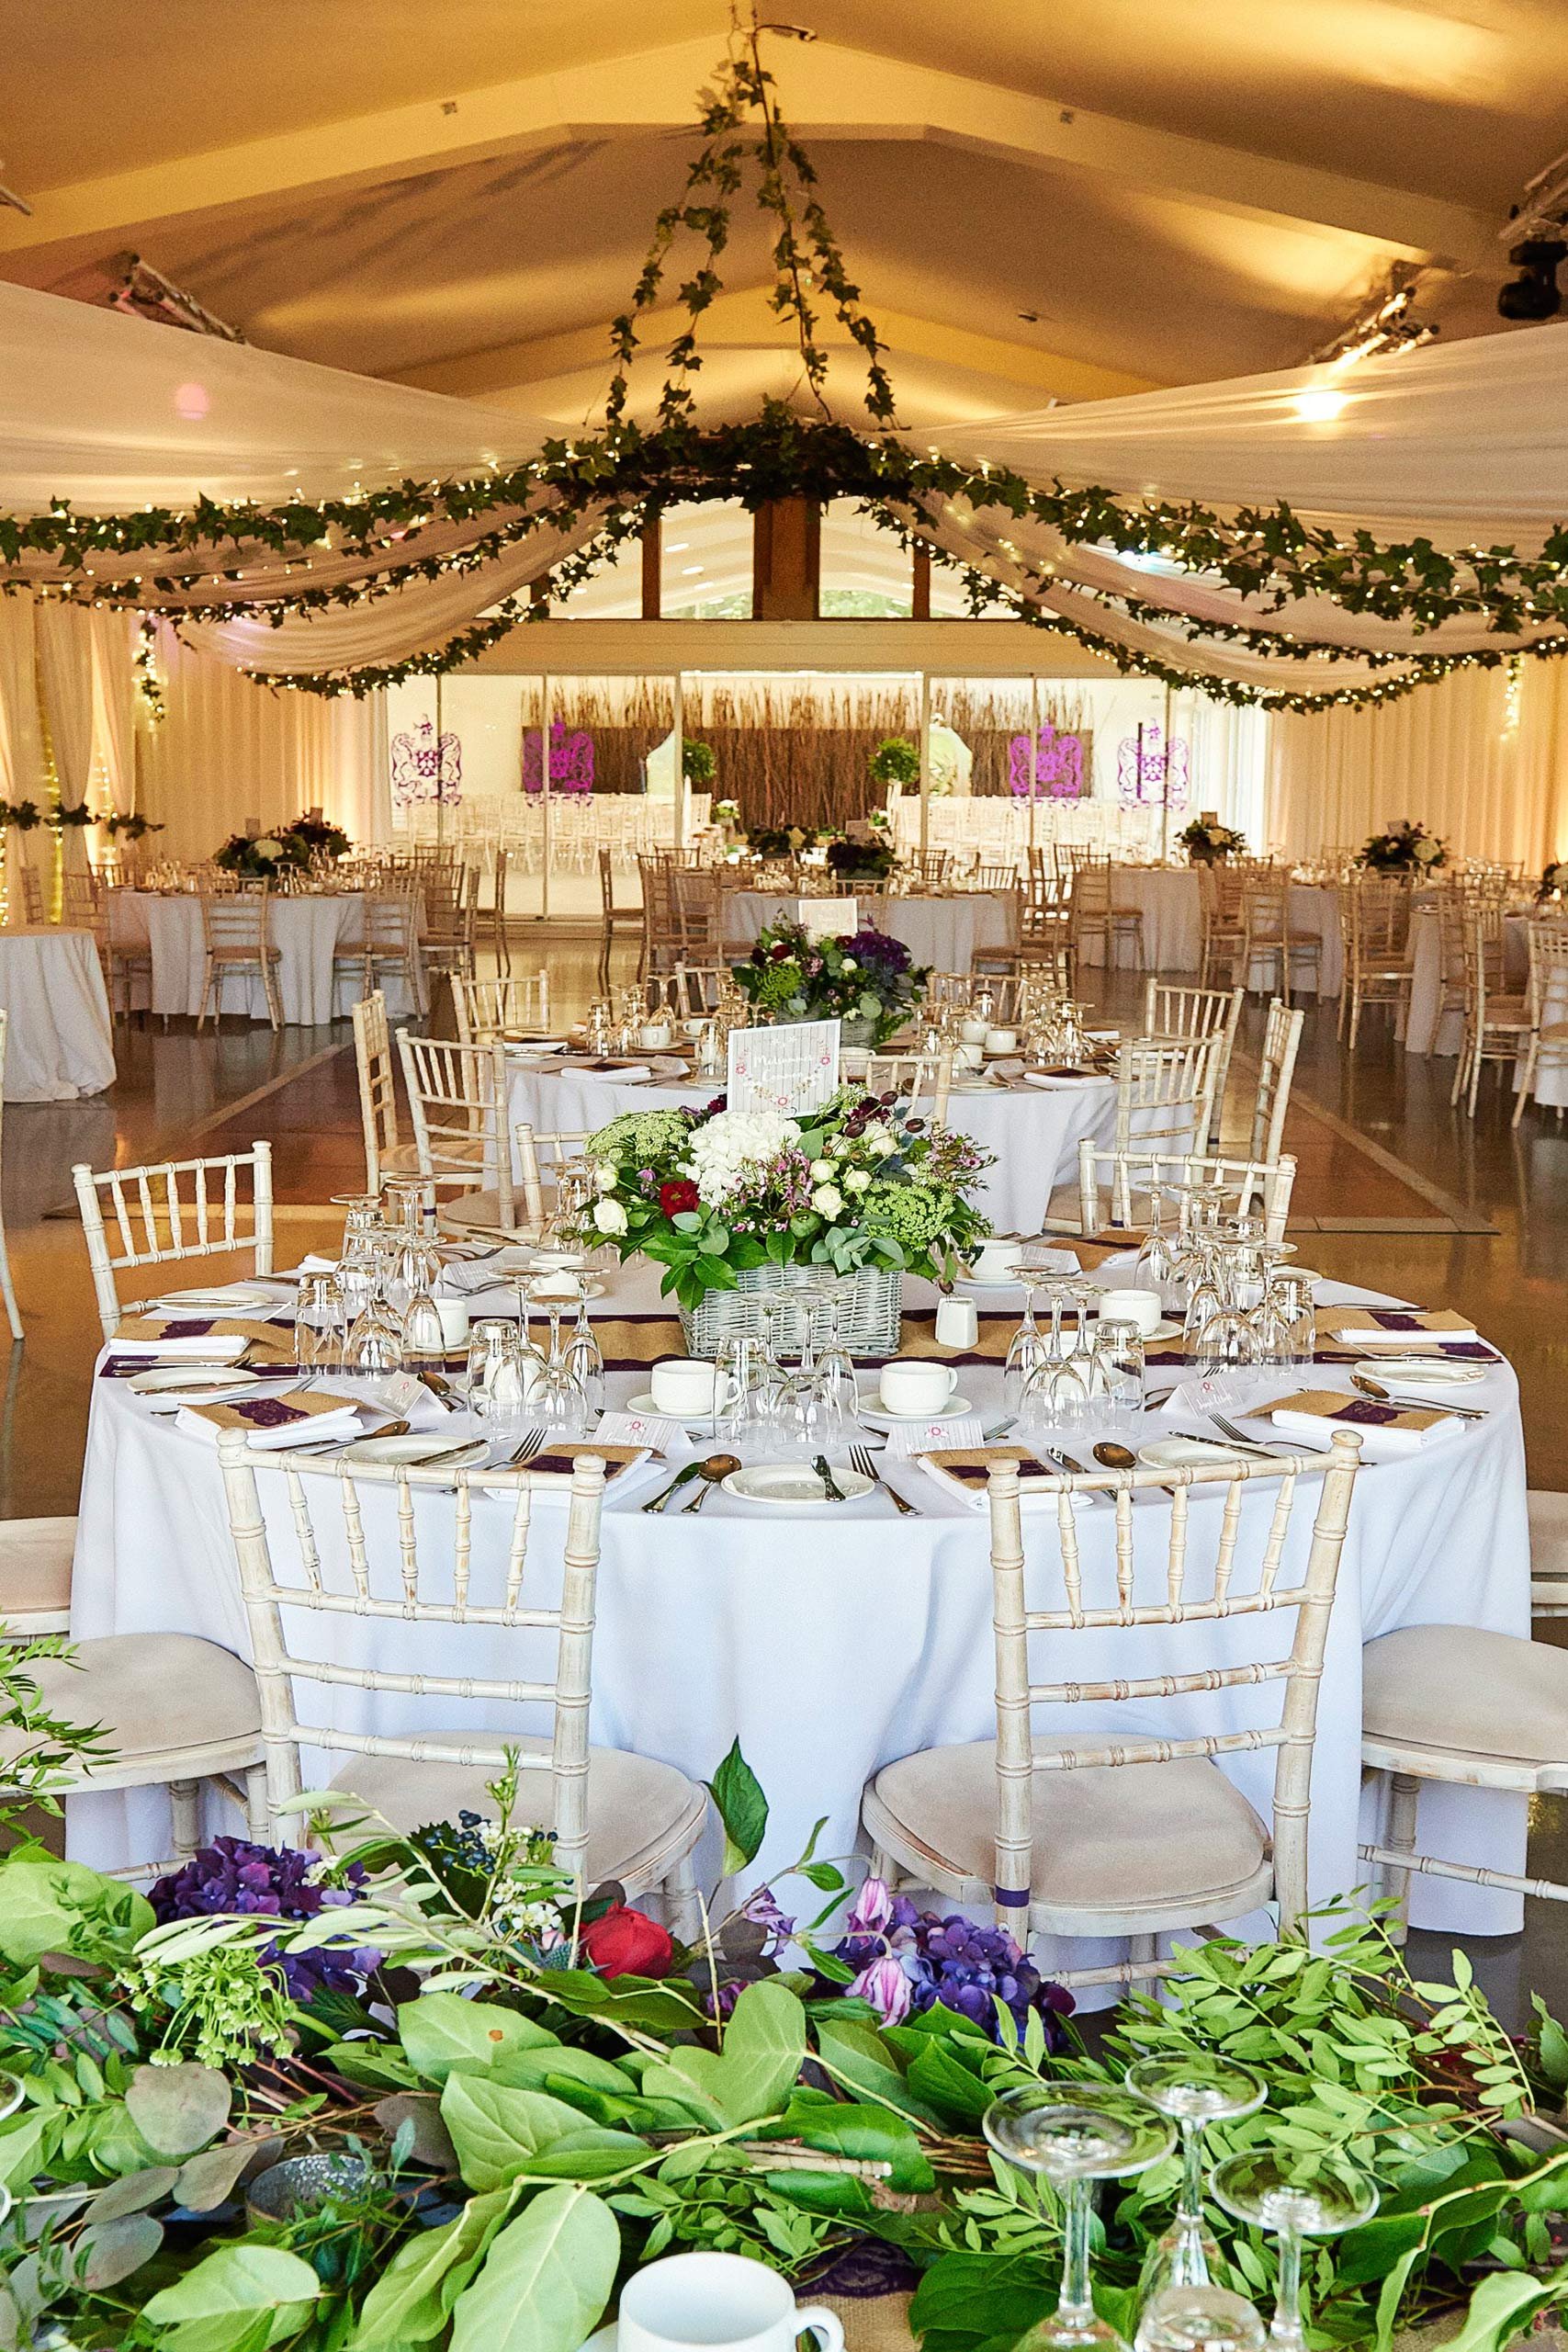 wedding ceiling drapes with fairy lights and foliage garlans at ladywood estates